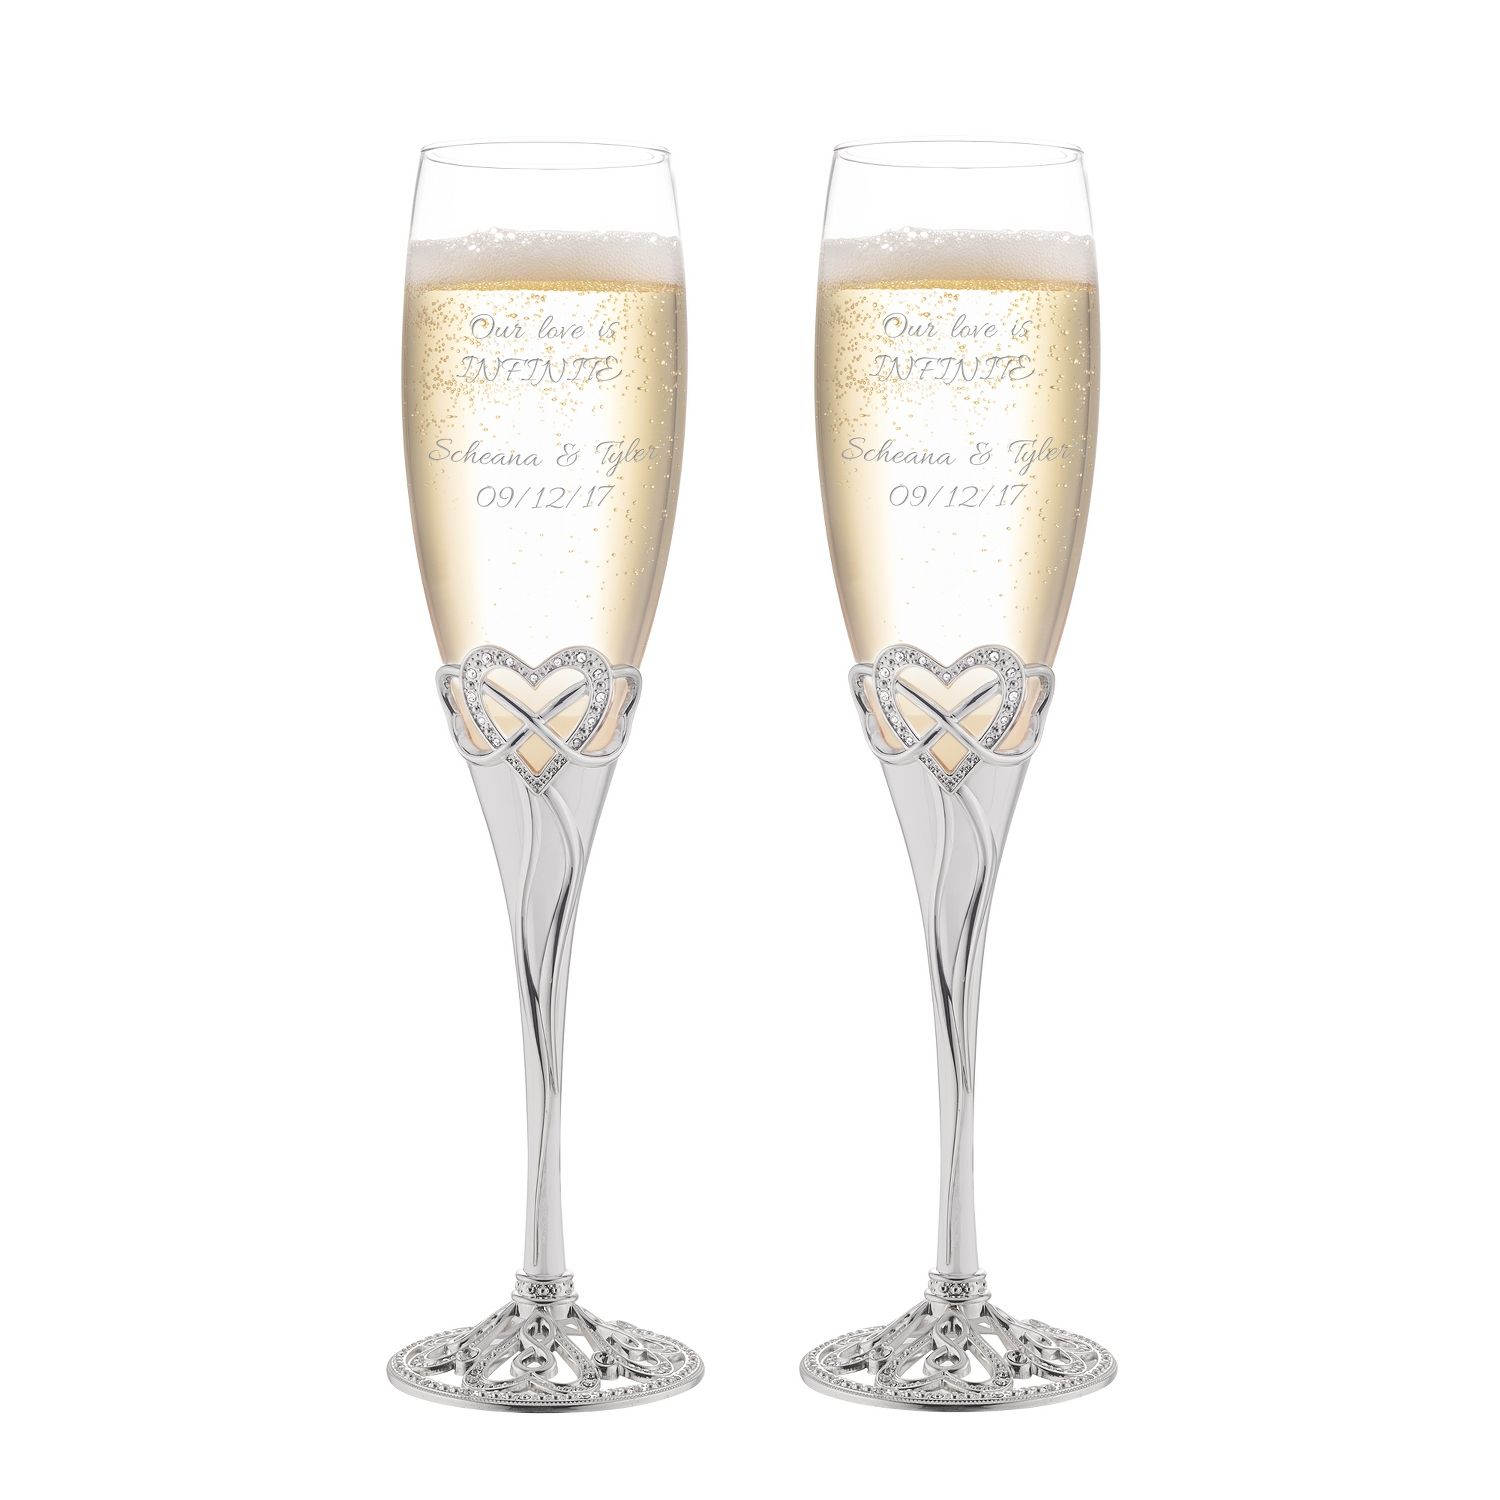 Infinity Heart Champagne Flute Set Champagne Flute Set Champagne Flute Wedding Gifts For Friends